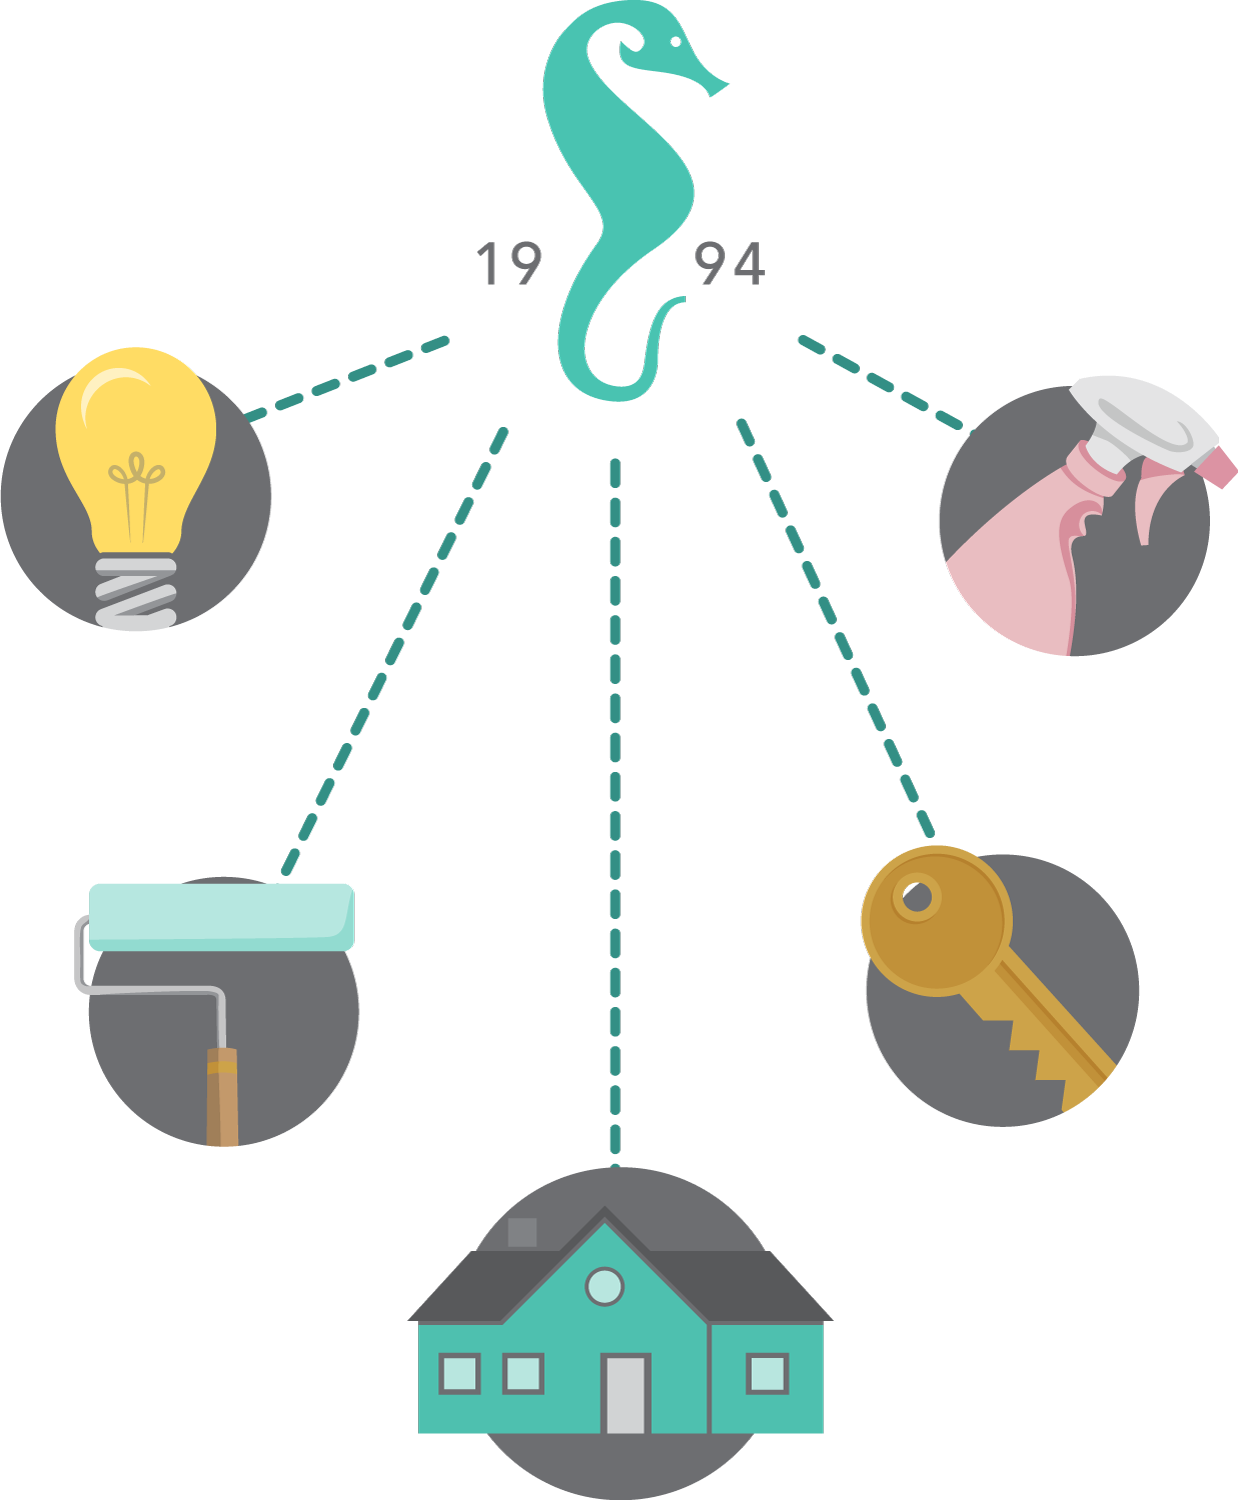 gamble-home-services-logo-with-service-icons-graphic.jpg